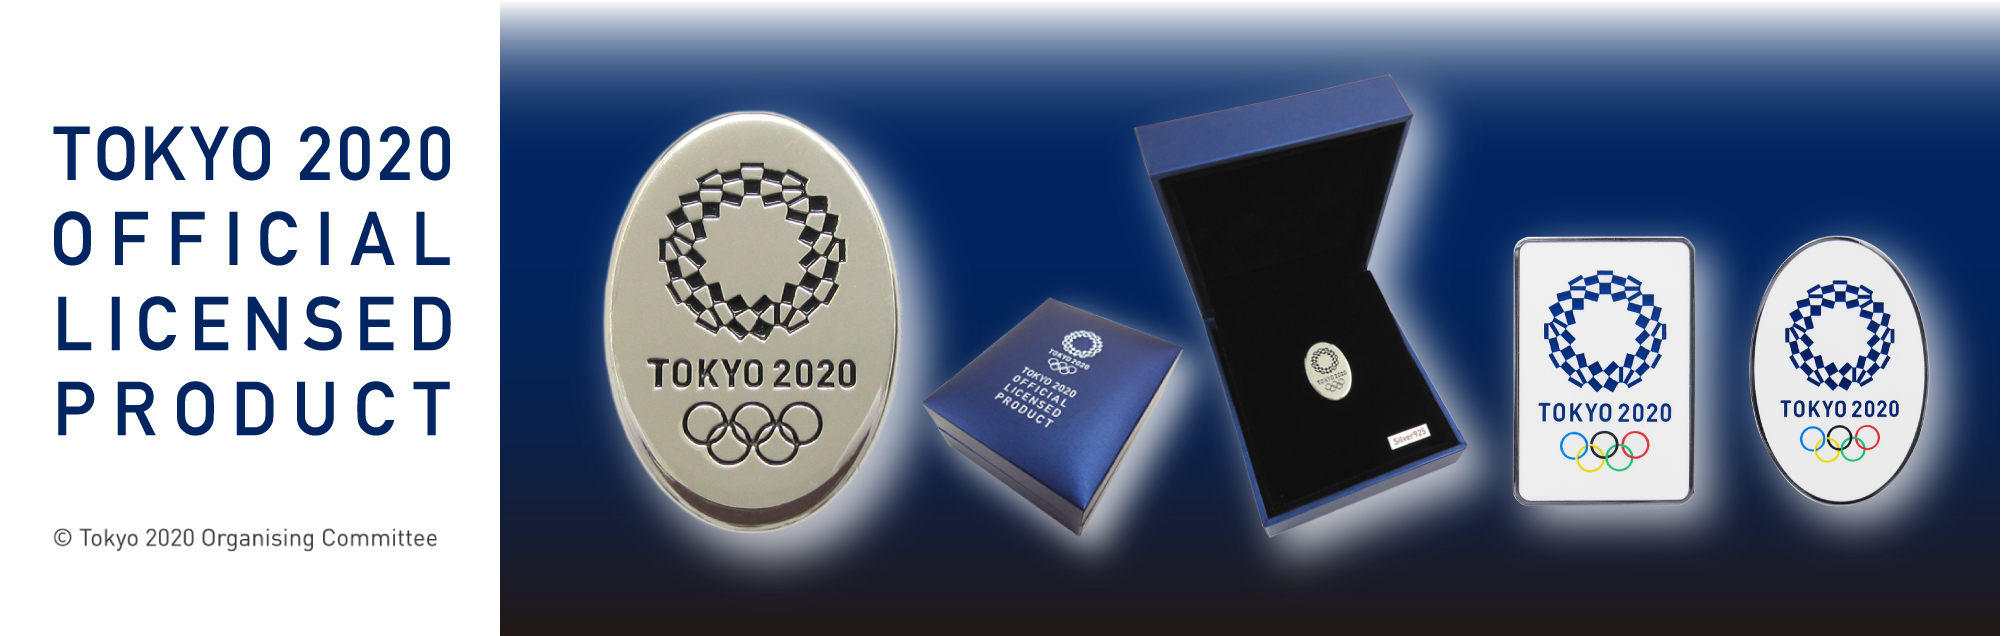 TOKYO 2020 OFFICIAL LICENSED PRODUCTS